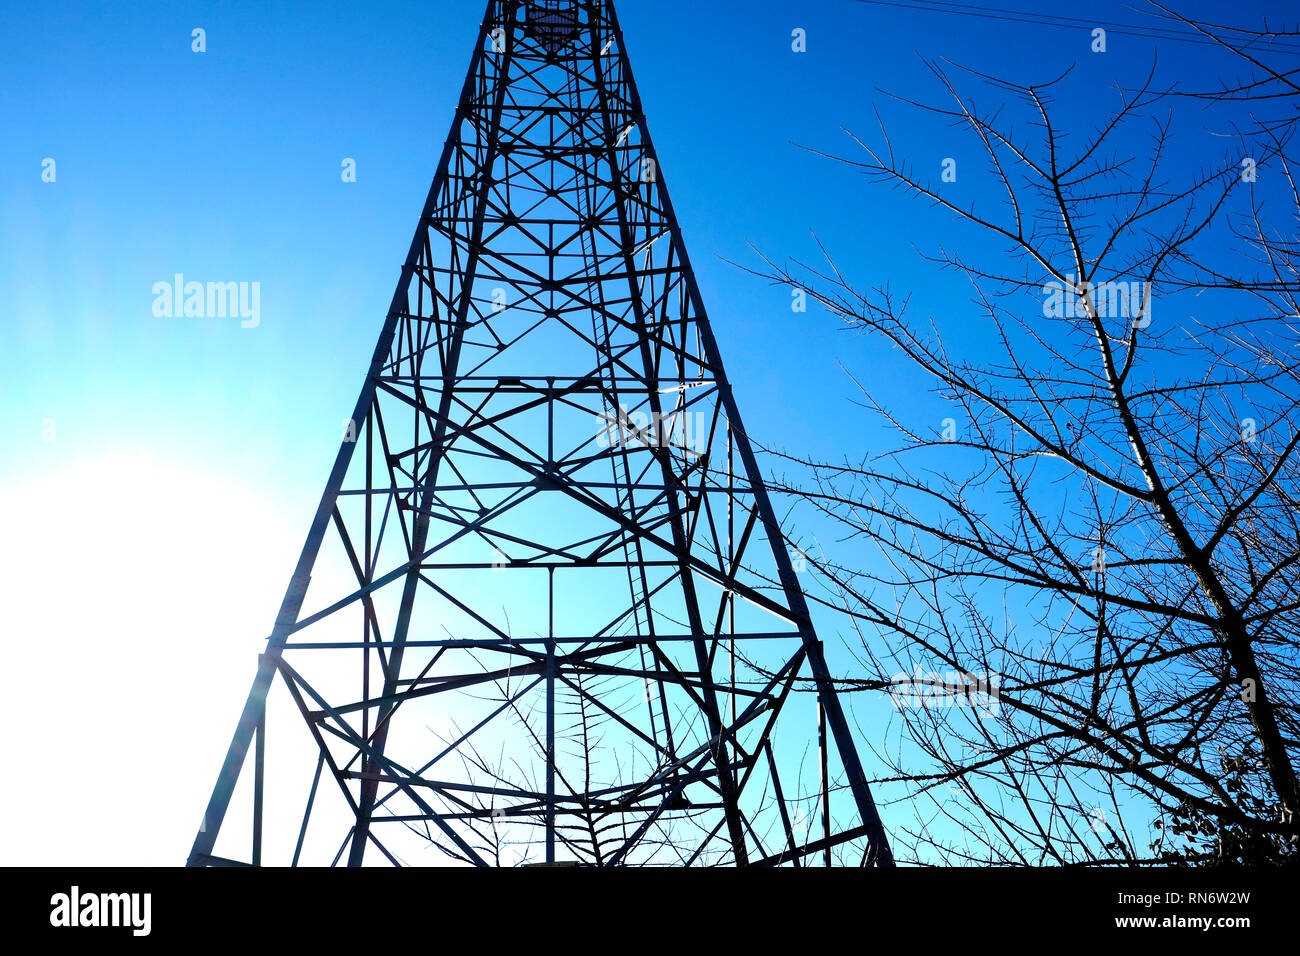 Electricity Pylon on the banks of the Medina River, Newport, isle of Wight, England, UK - Stock Image